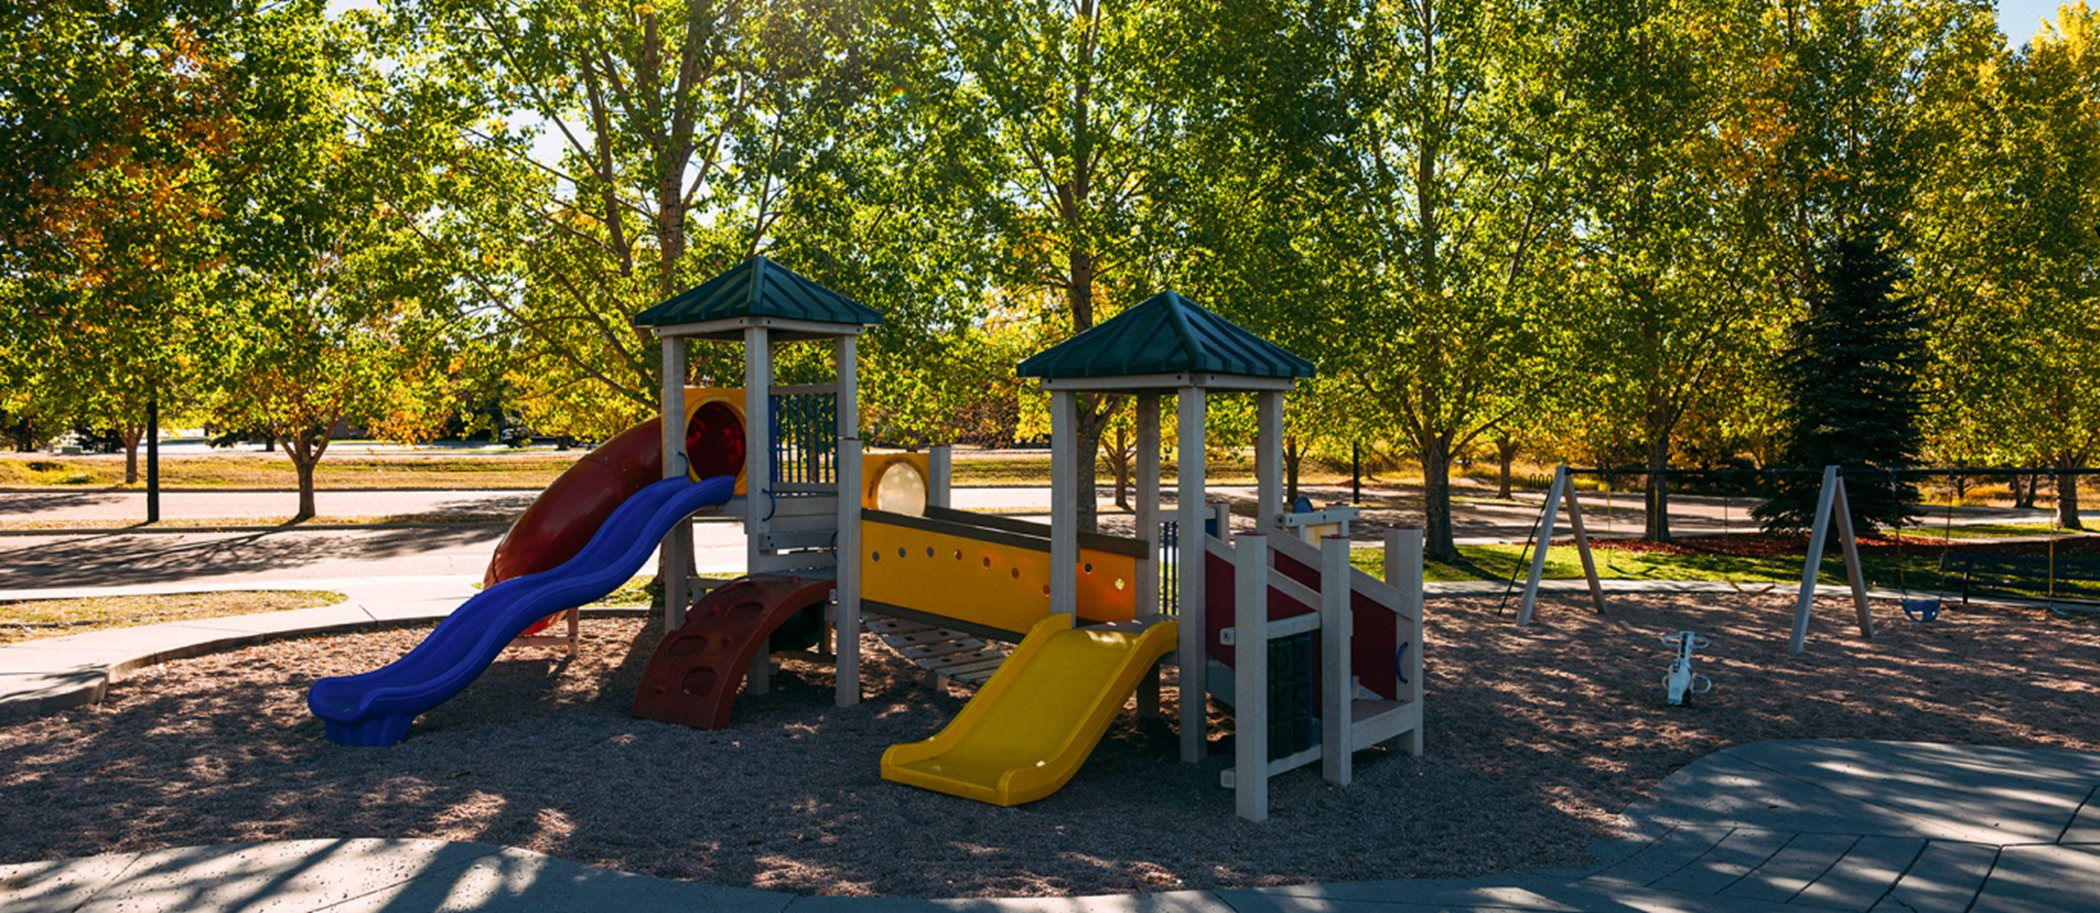 The Monarch Collection - Gold Creek Valley Playground